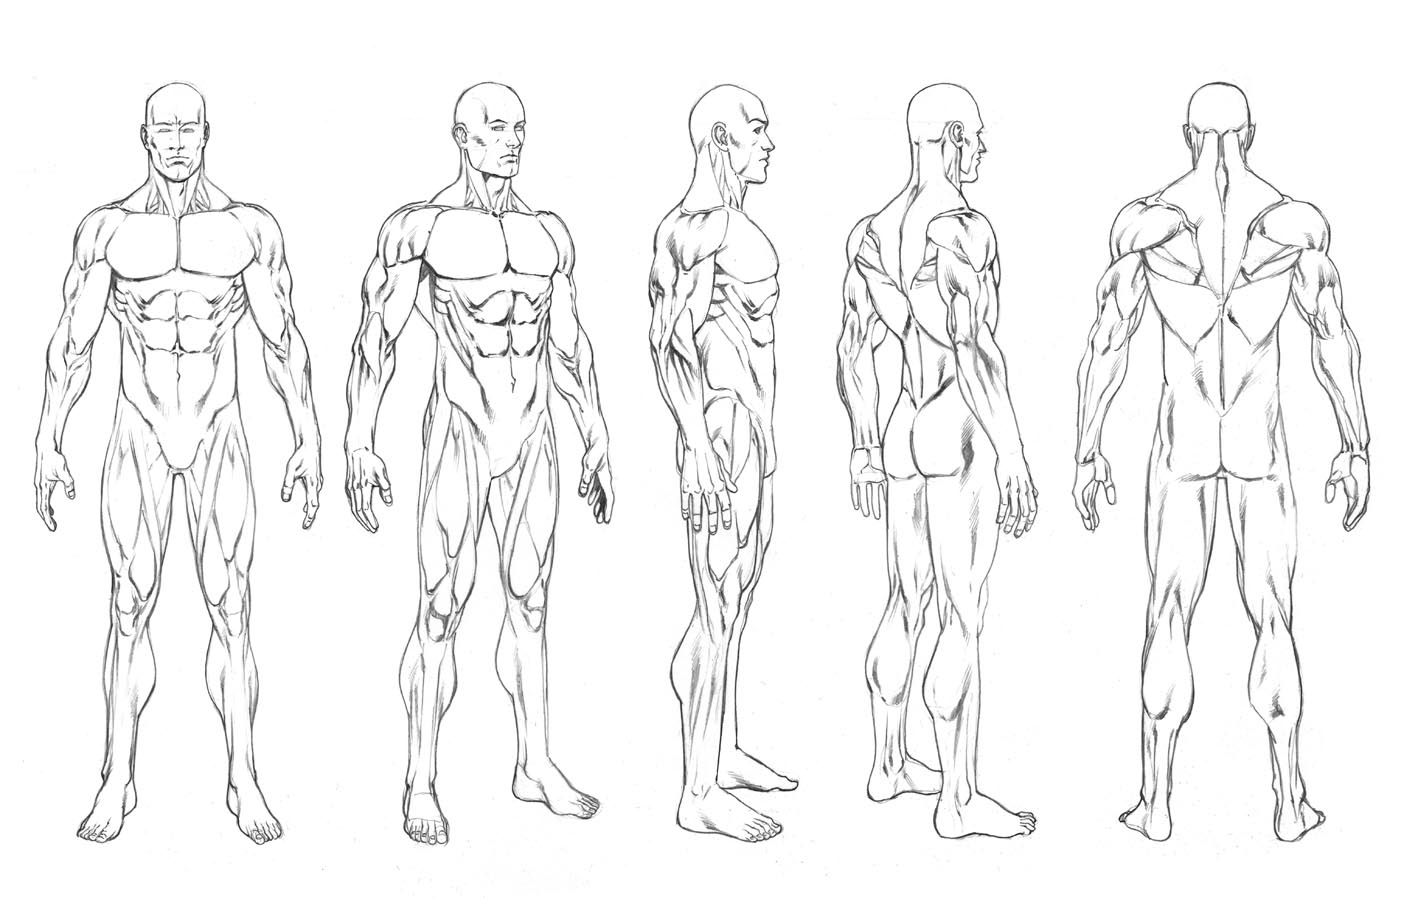 Comic Book Character Design Template : Robert atkins art character turnarounds and figure